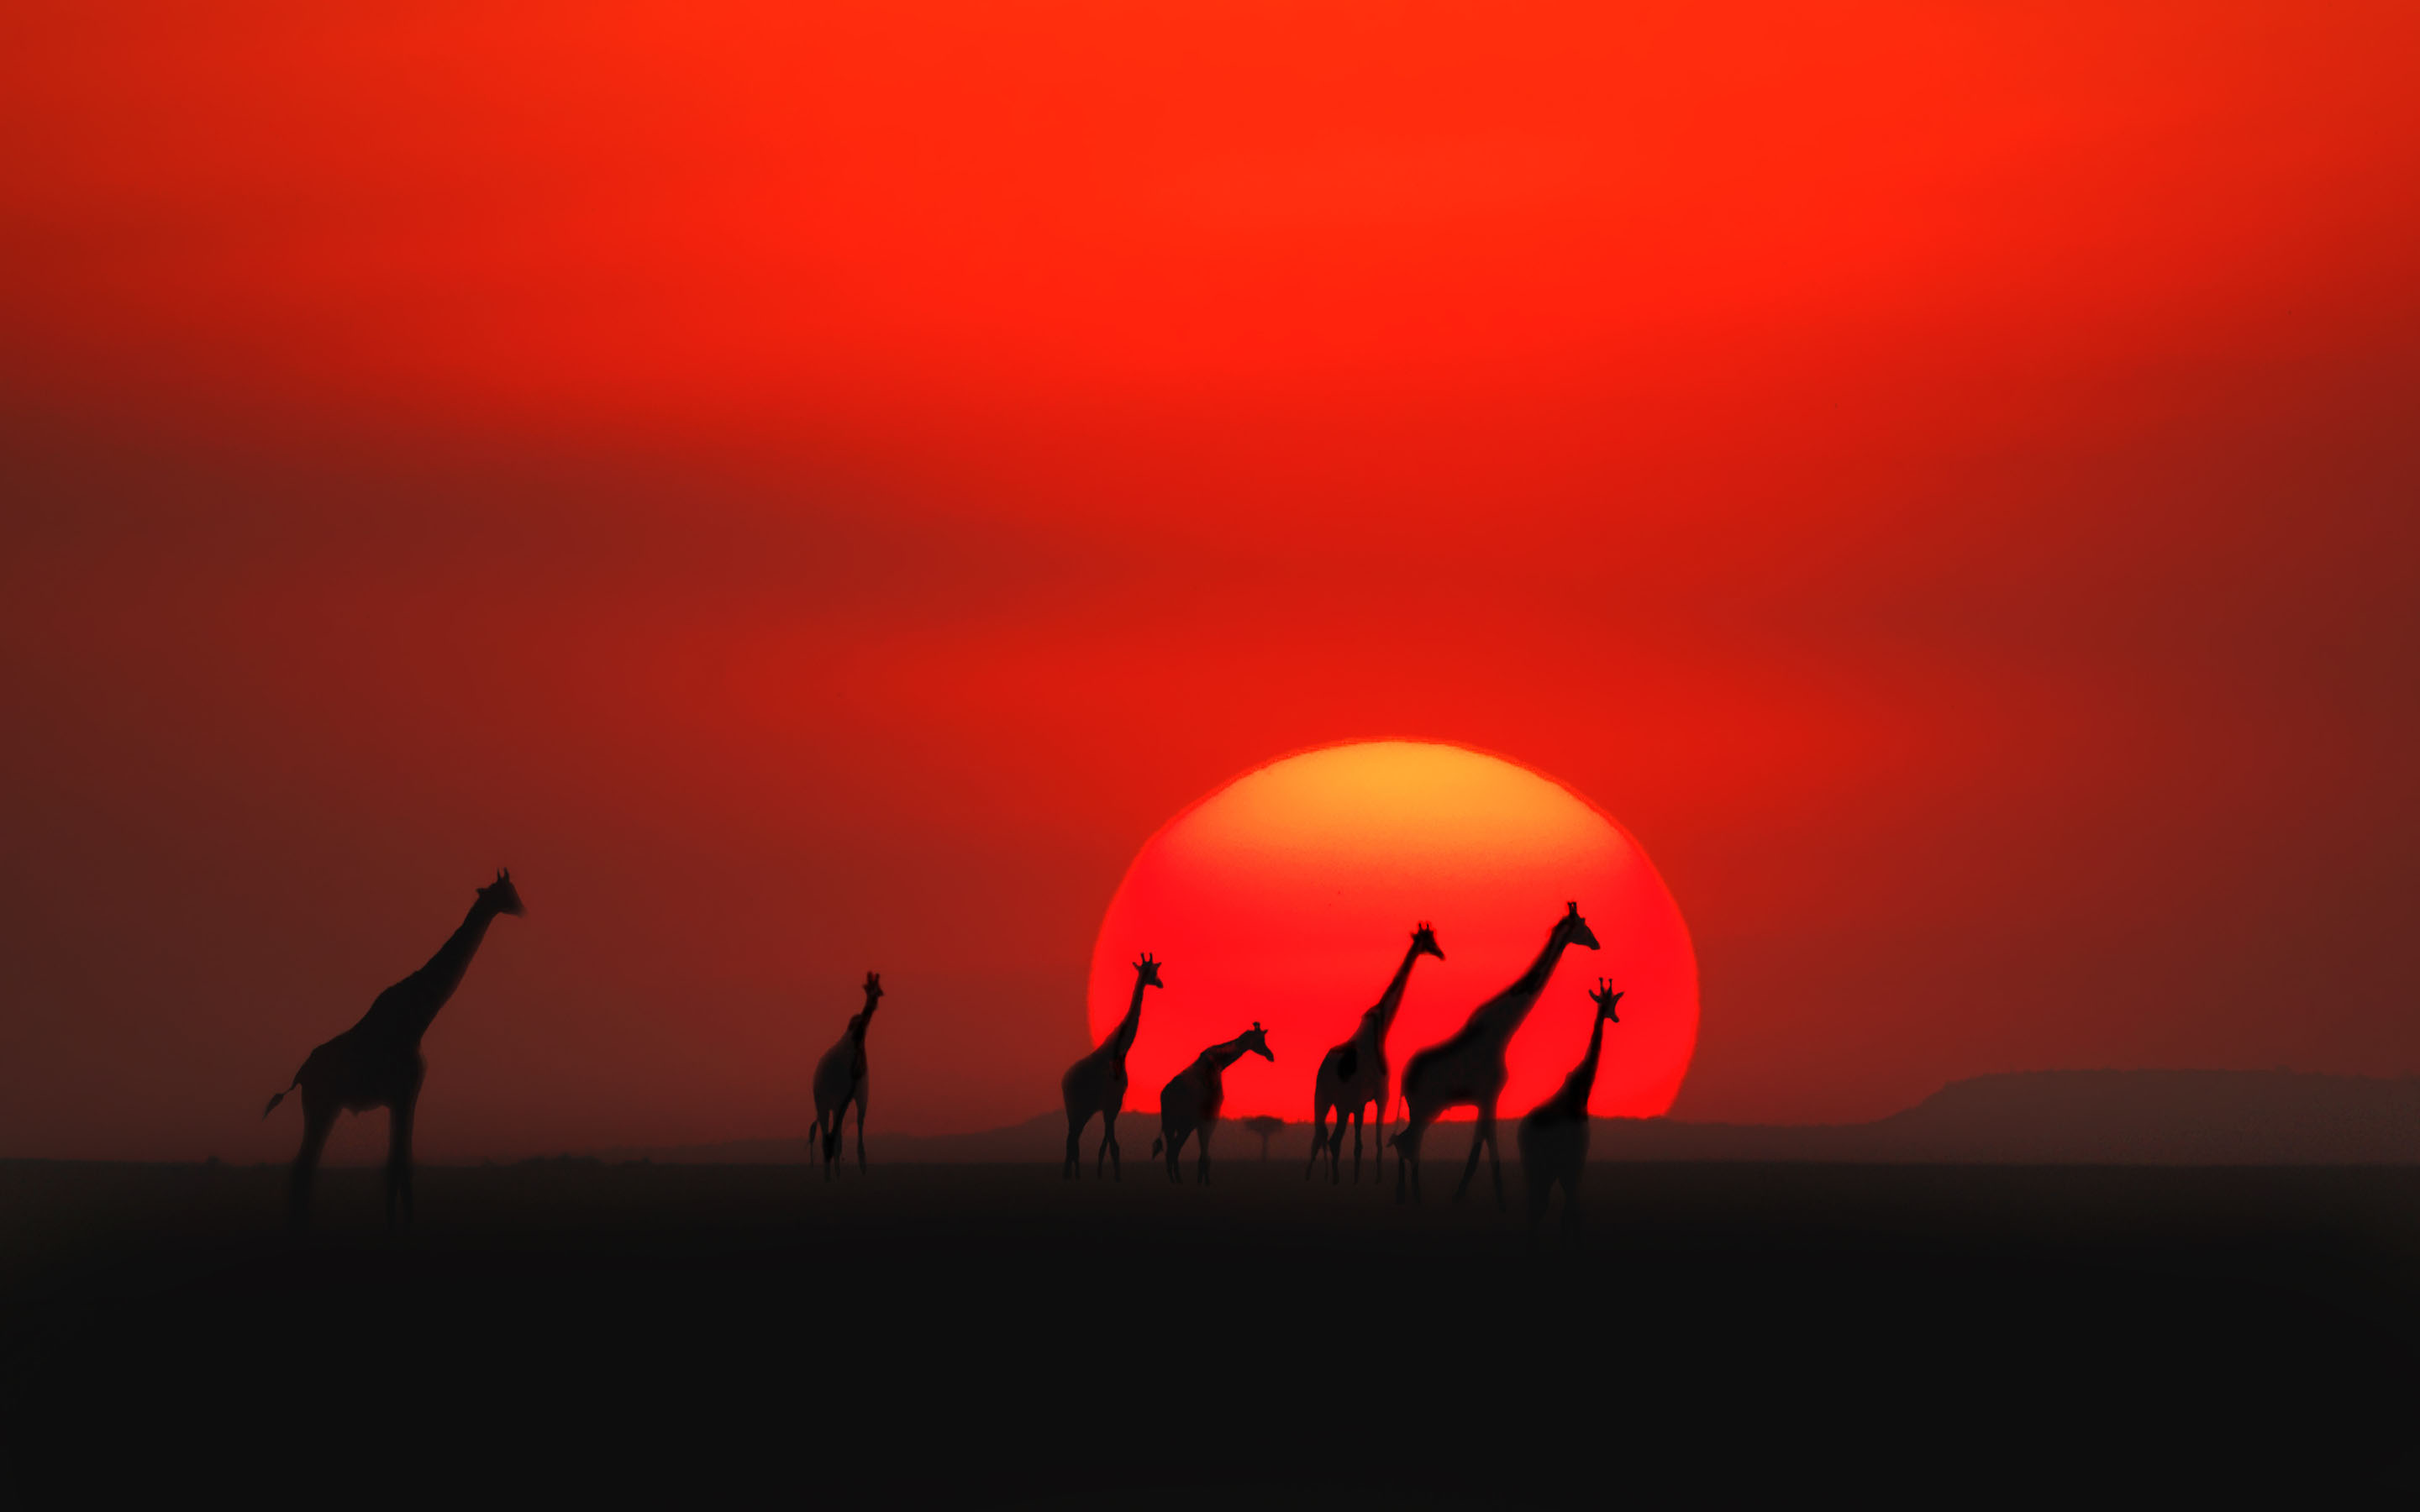 Giraffes on Sunset Background in Kenya 252.98 Kb